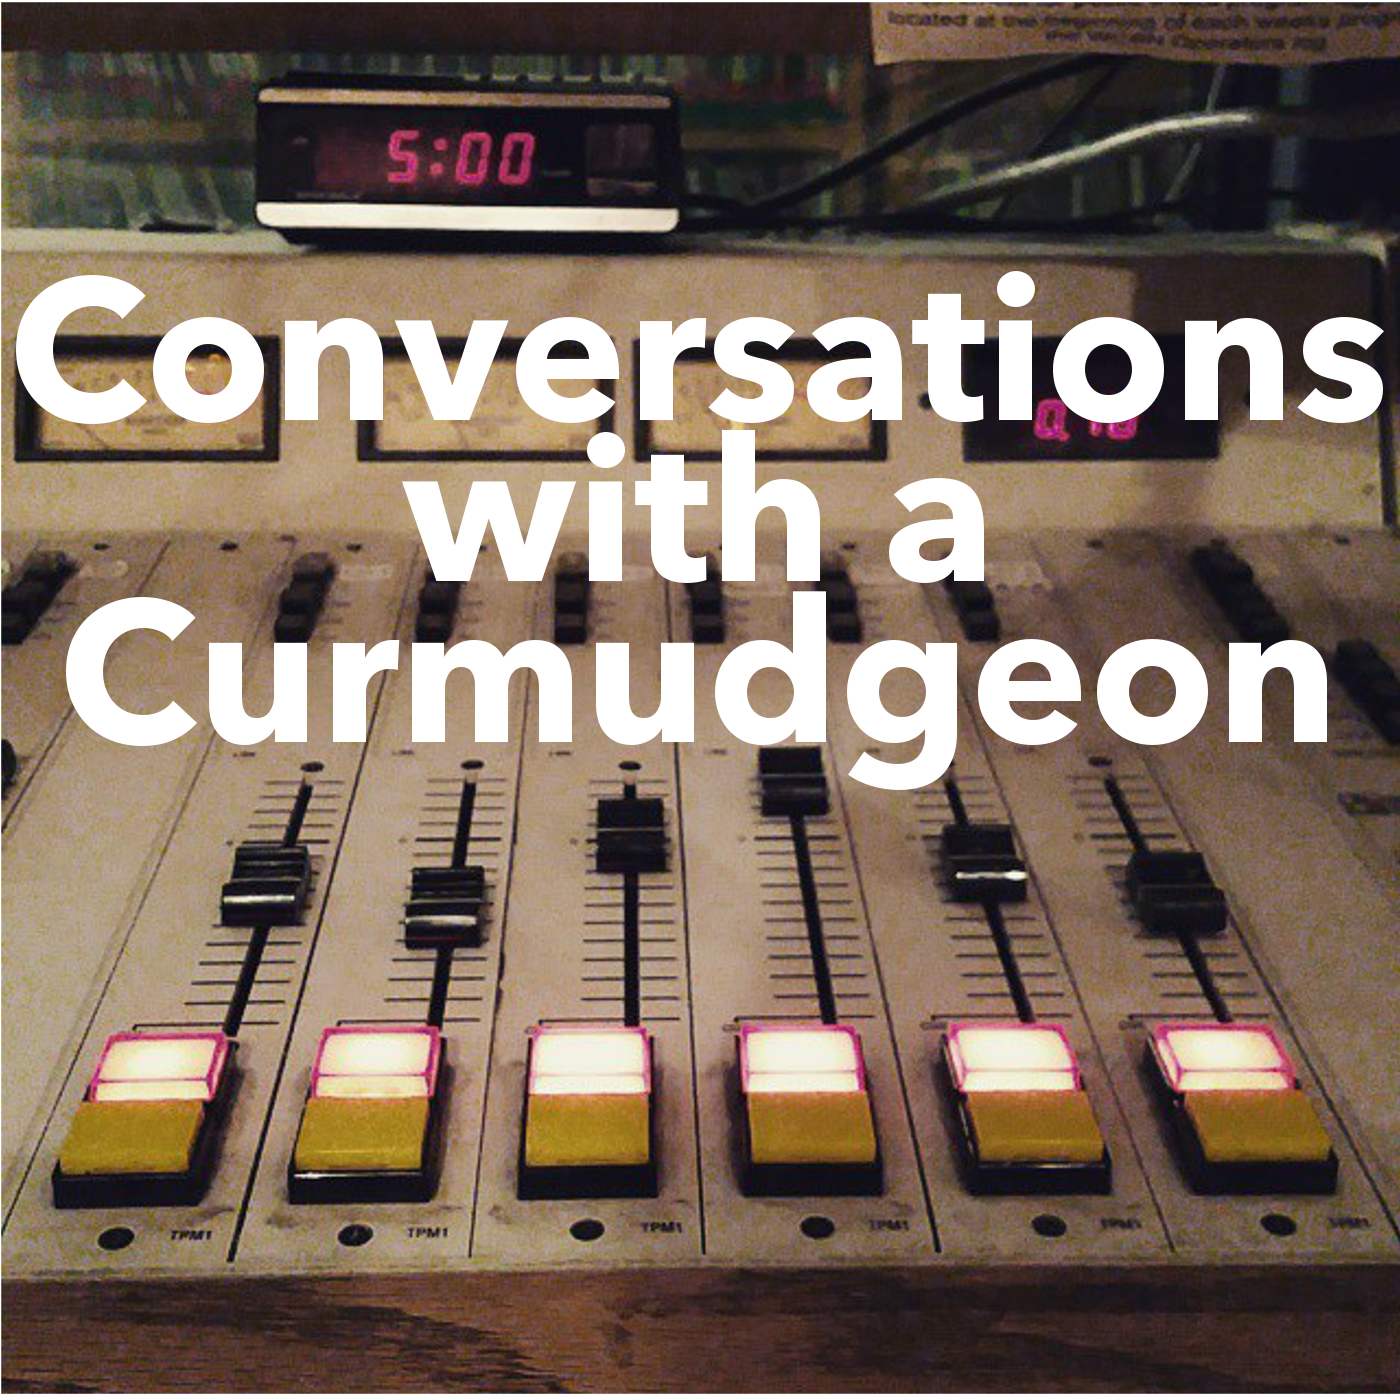 Conversations with a Curmudgeon - Trying Not to Swear